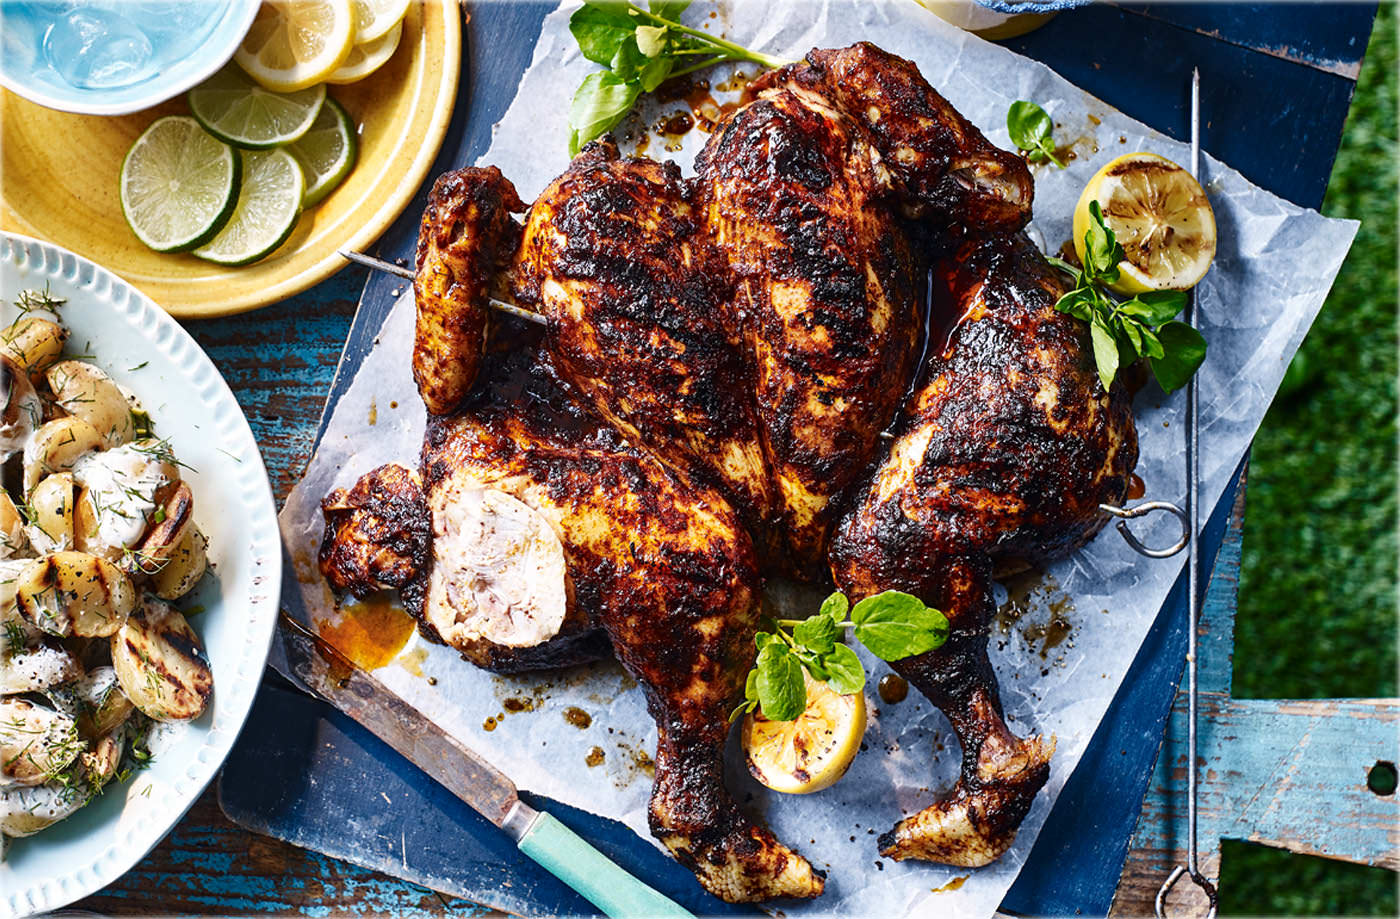 10 Barbeque Food Safety Essentials You Need To Be Aware Of